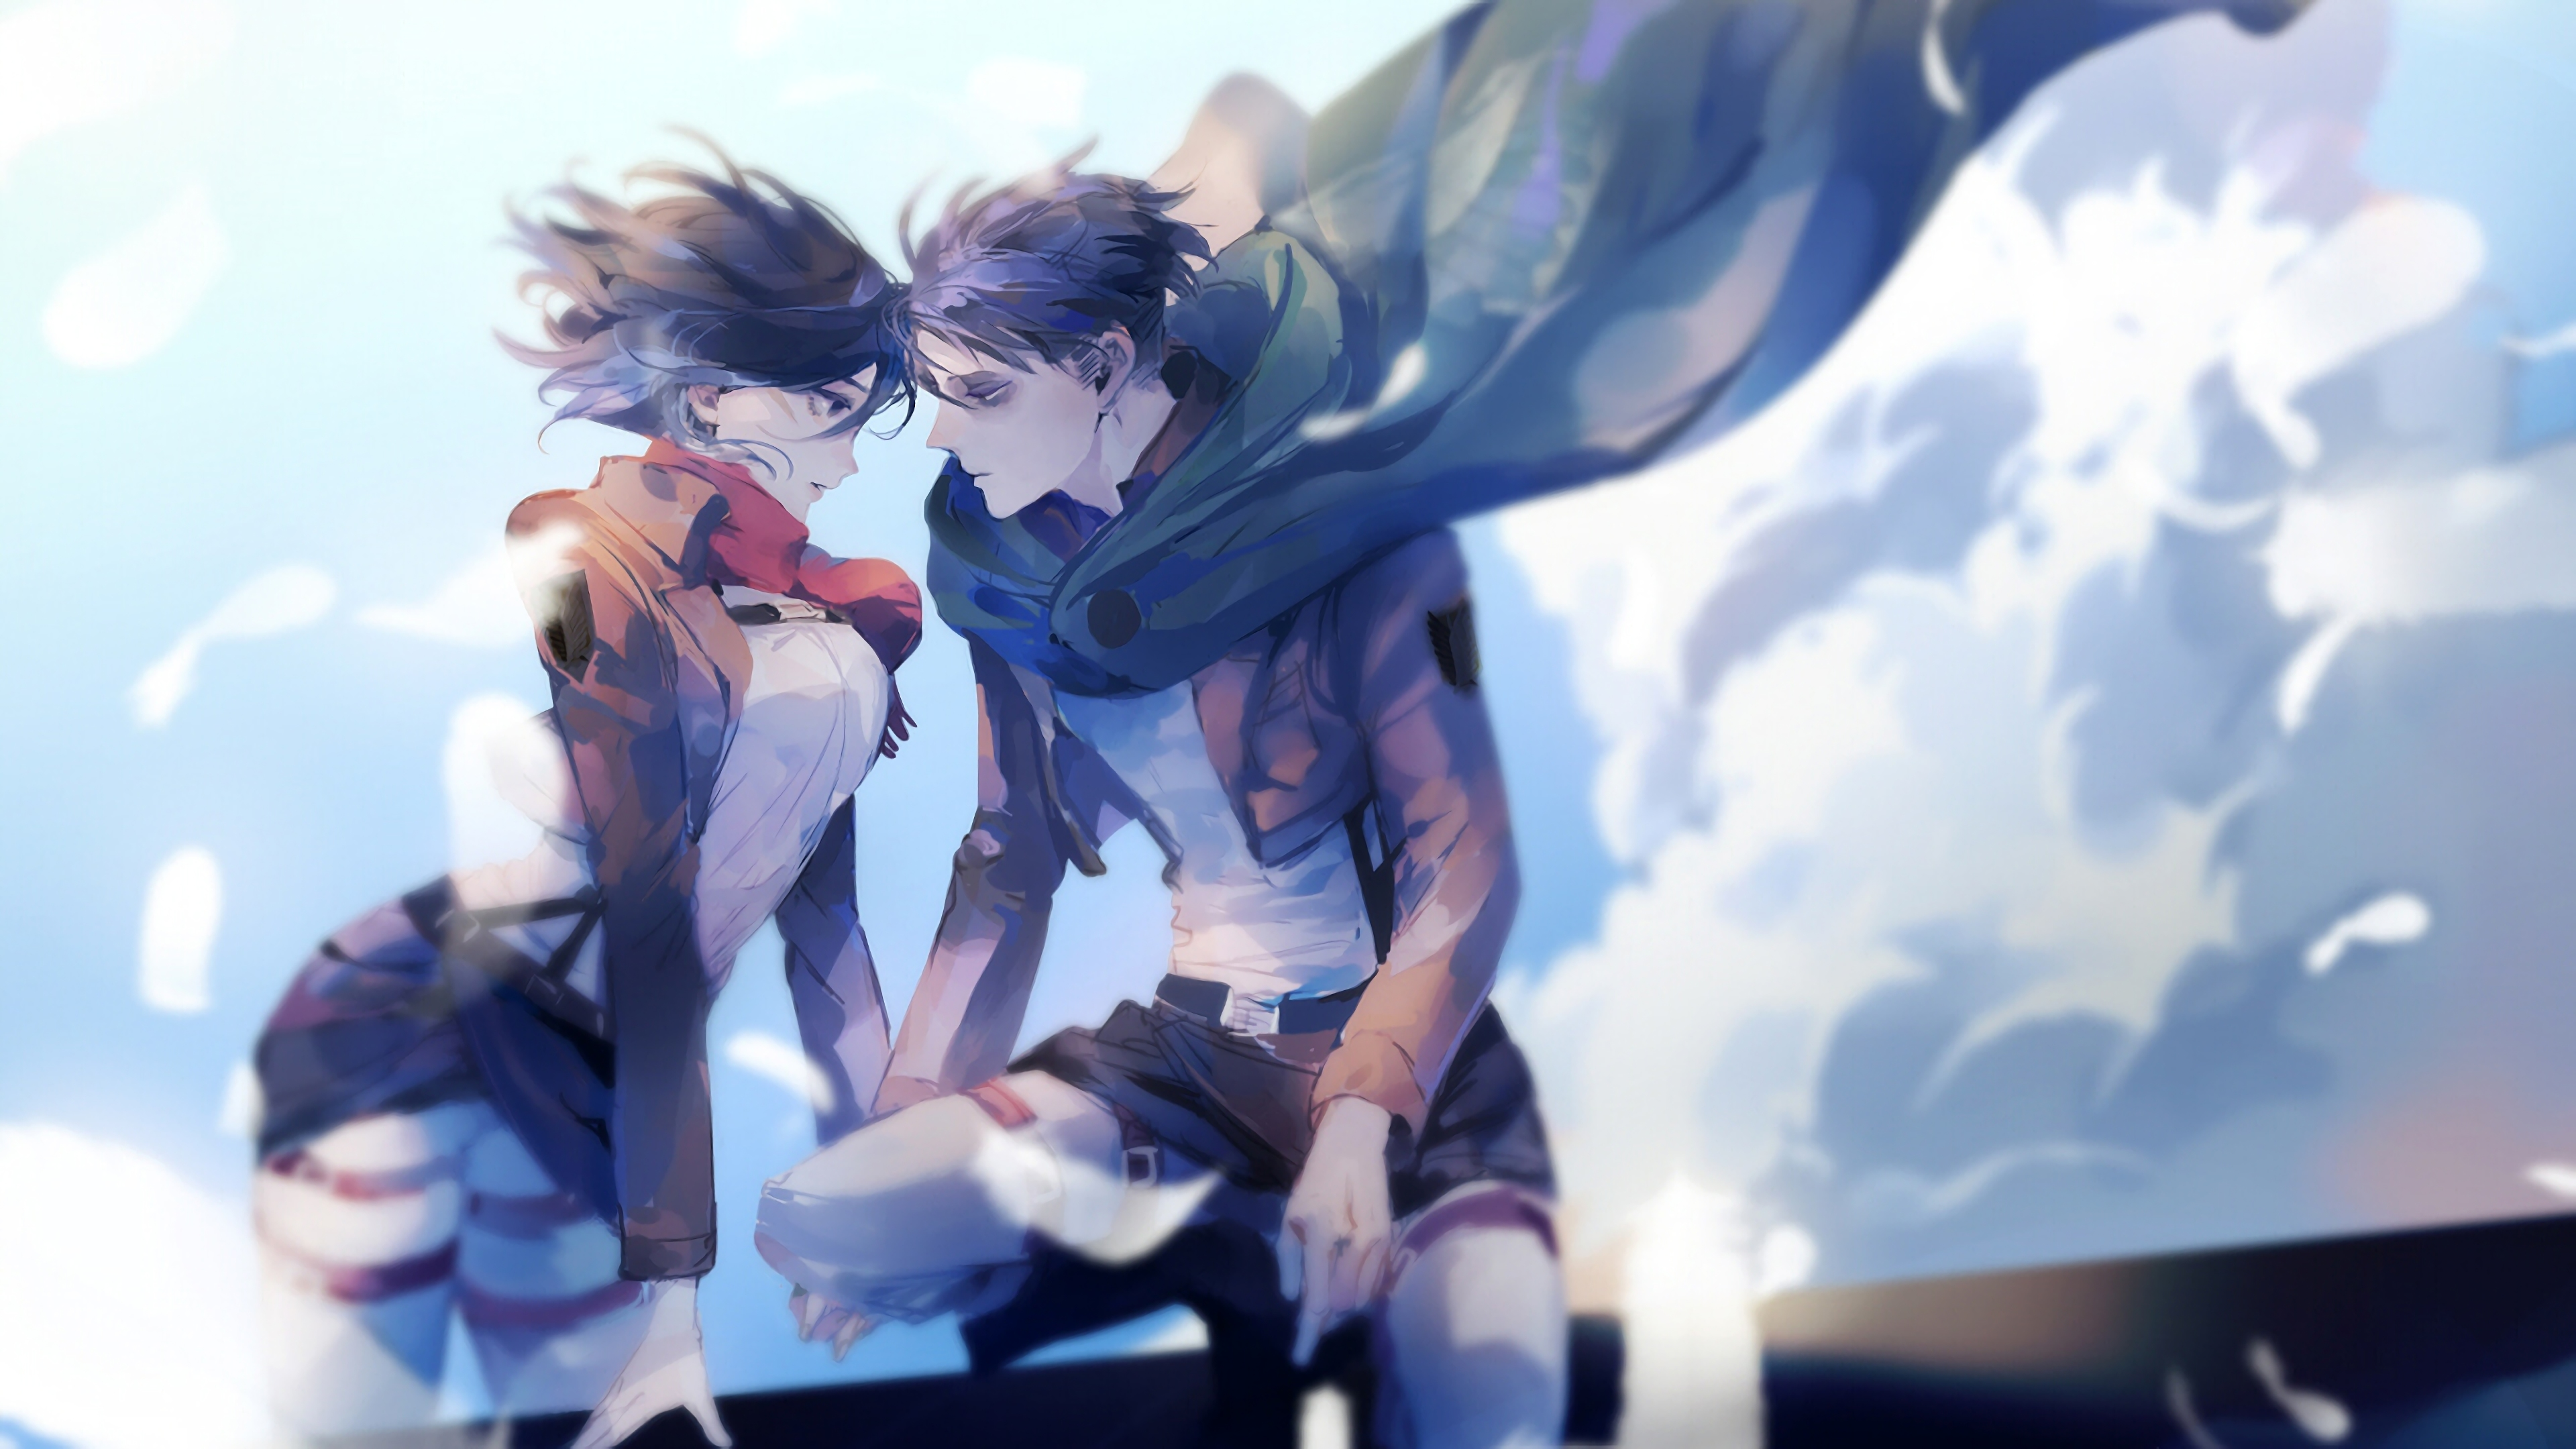 Mikasa And Levi Attack On Titan 4k Attack On Titan 4k 3840x2160 Wallpaper Teahub Io